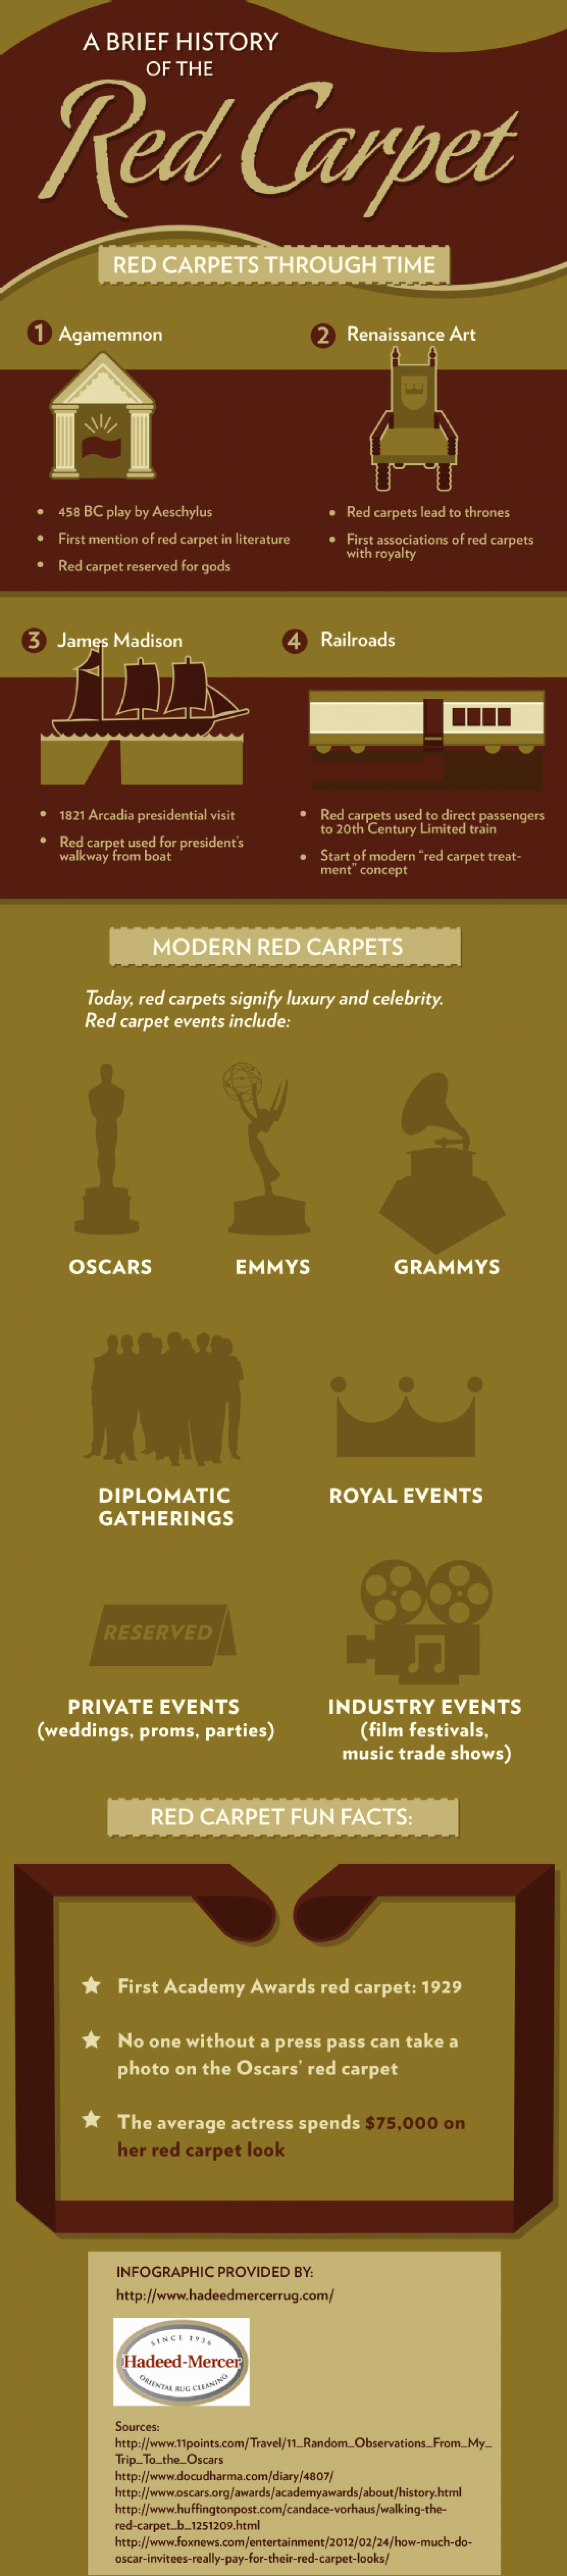 A Brief History of the Red Carpet  Infographic